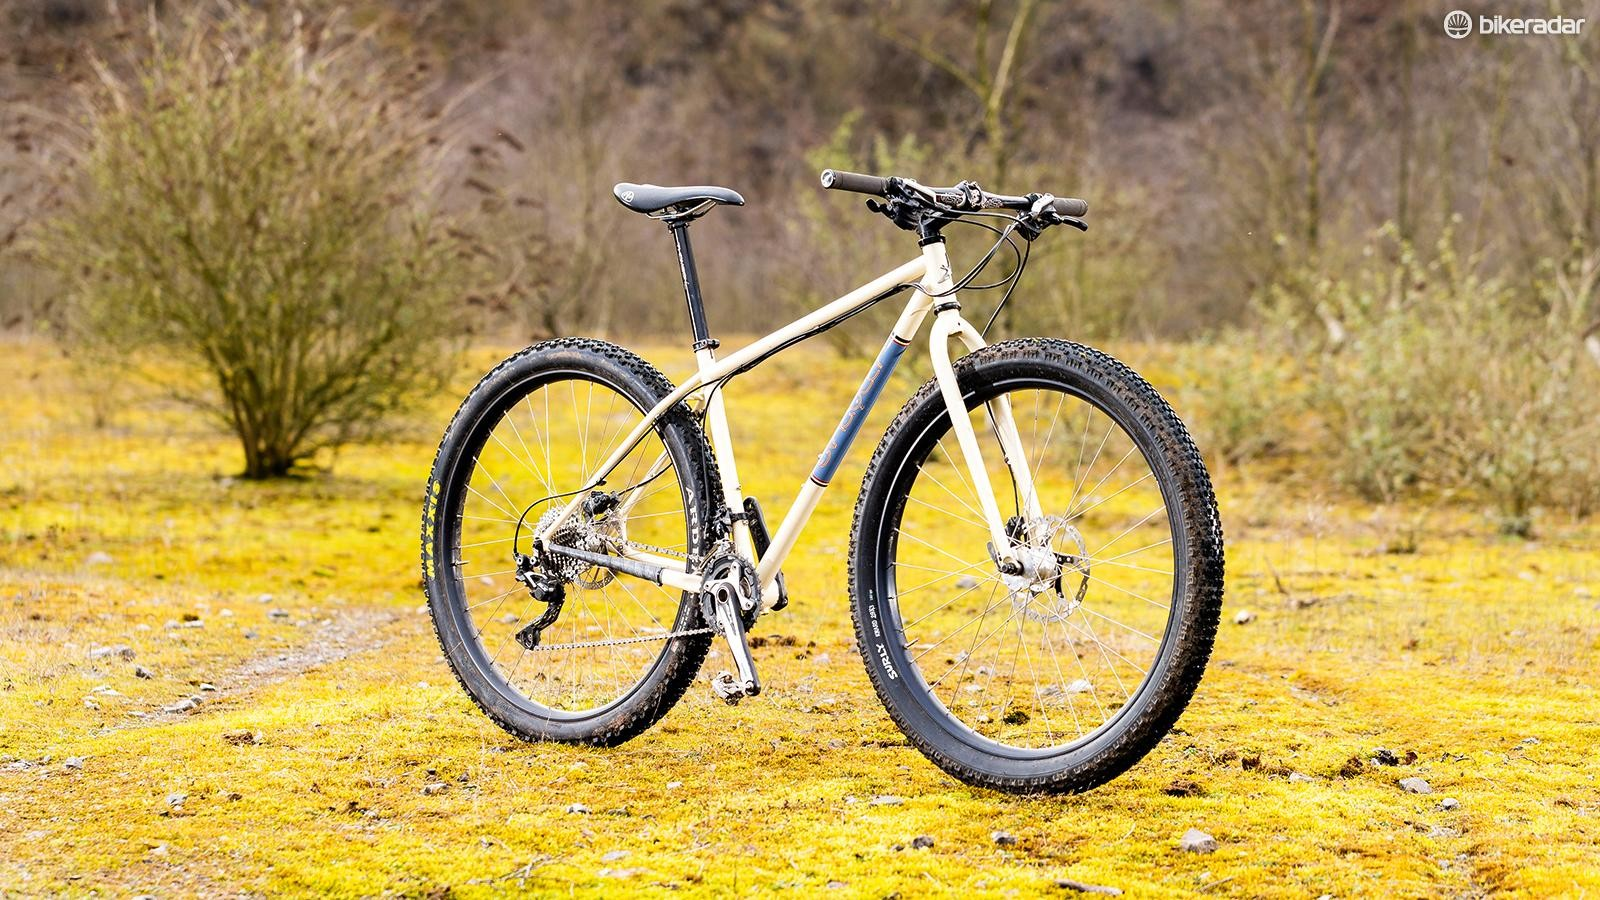 Singular's Swift can also accommodate a 100mm suspension fork, taking a degree off the head angle –but you'll need to find one with a straight 1 1/8in steerer